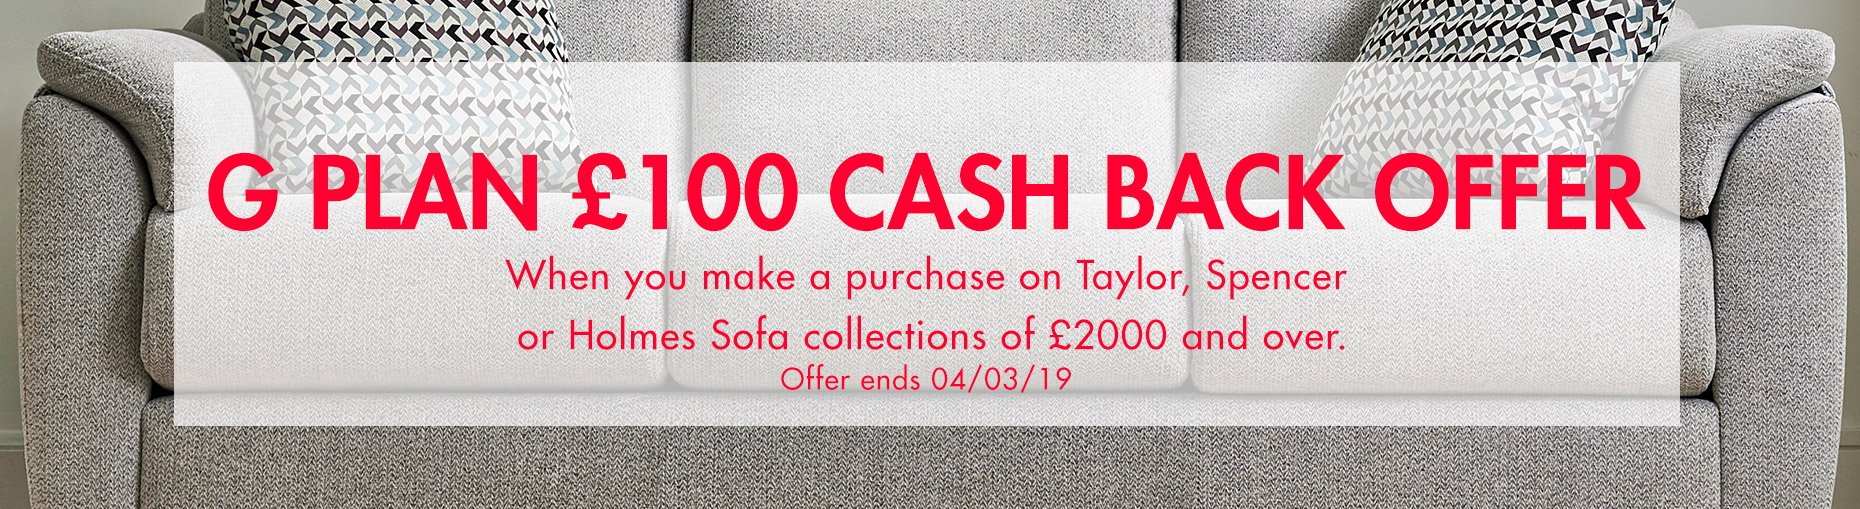 Get £100 Cash Back when you spend over £2000 on the Taylor Spencer or Holmes sofa Collections